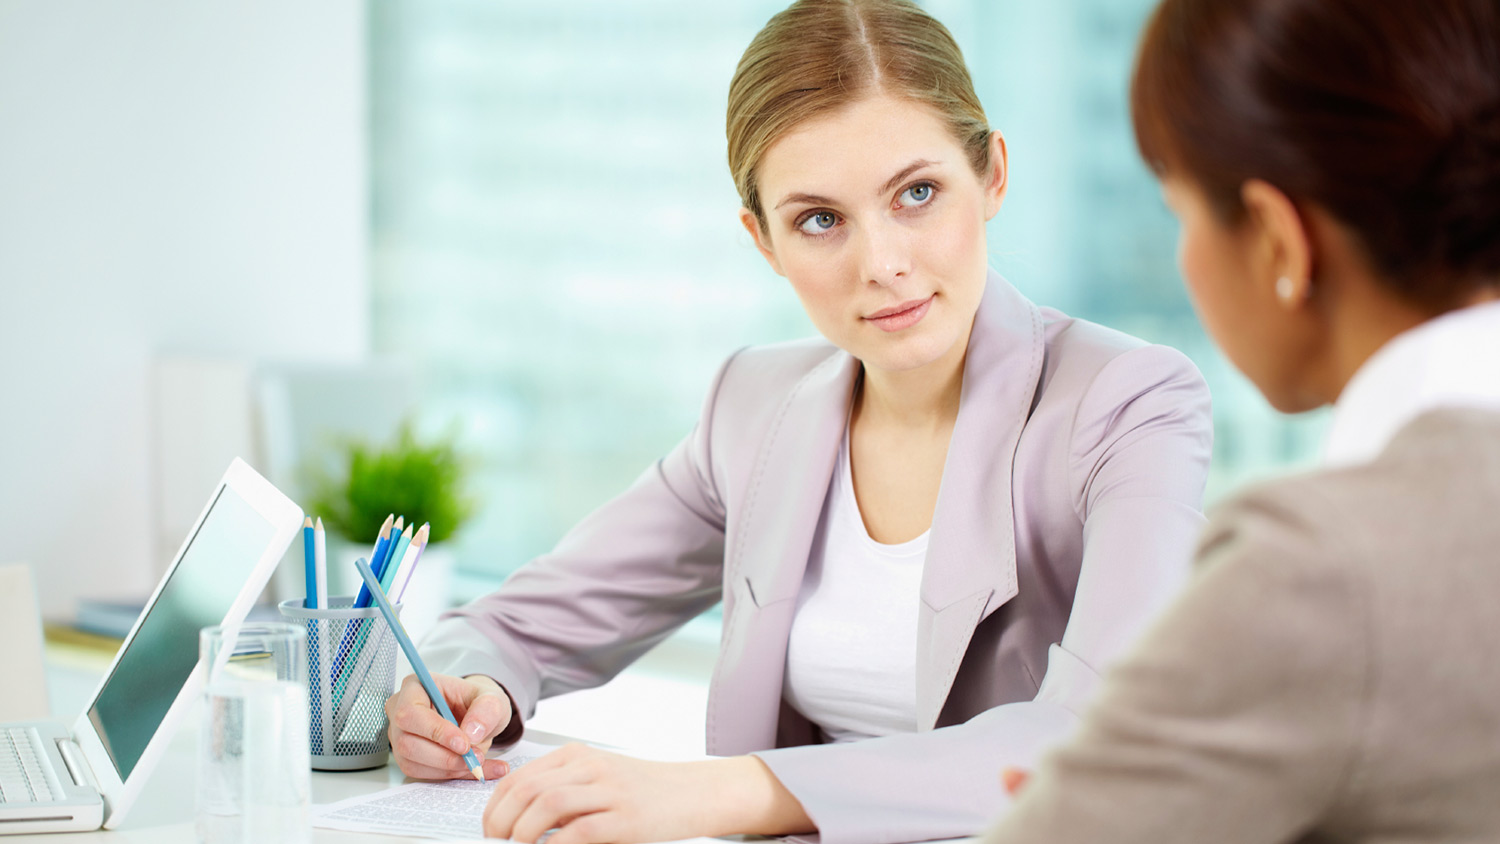 CIPD Level 3 Diploma in HR Practice - Fast Track course